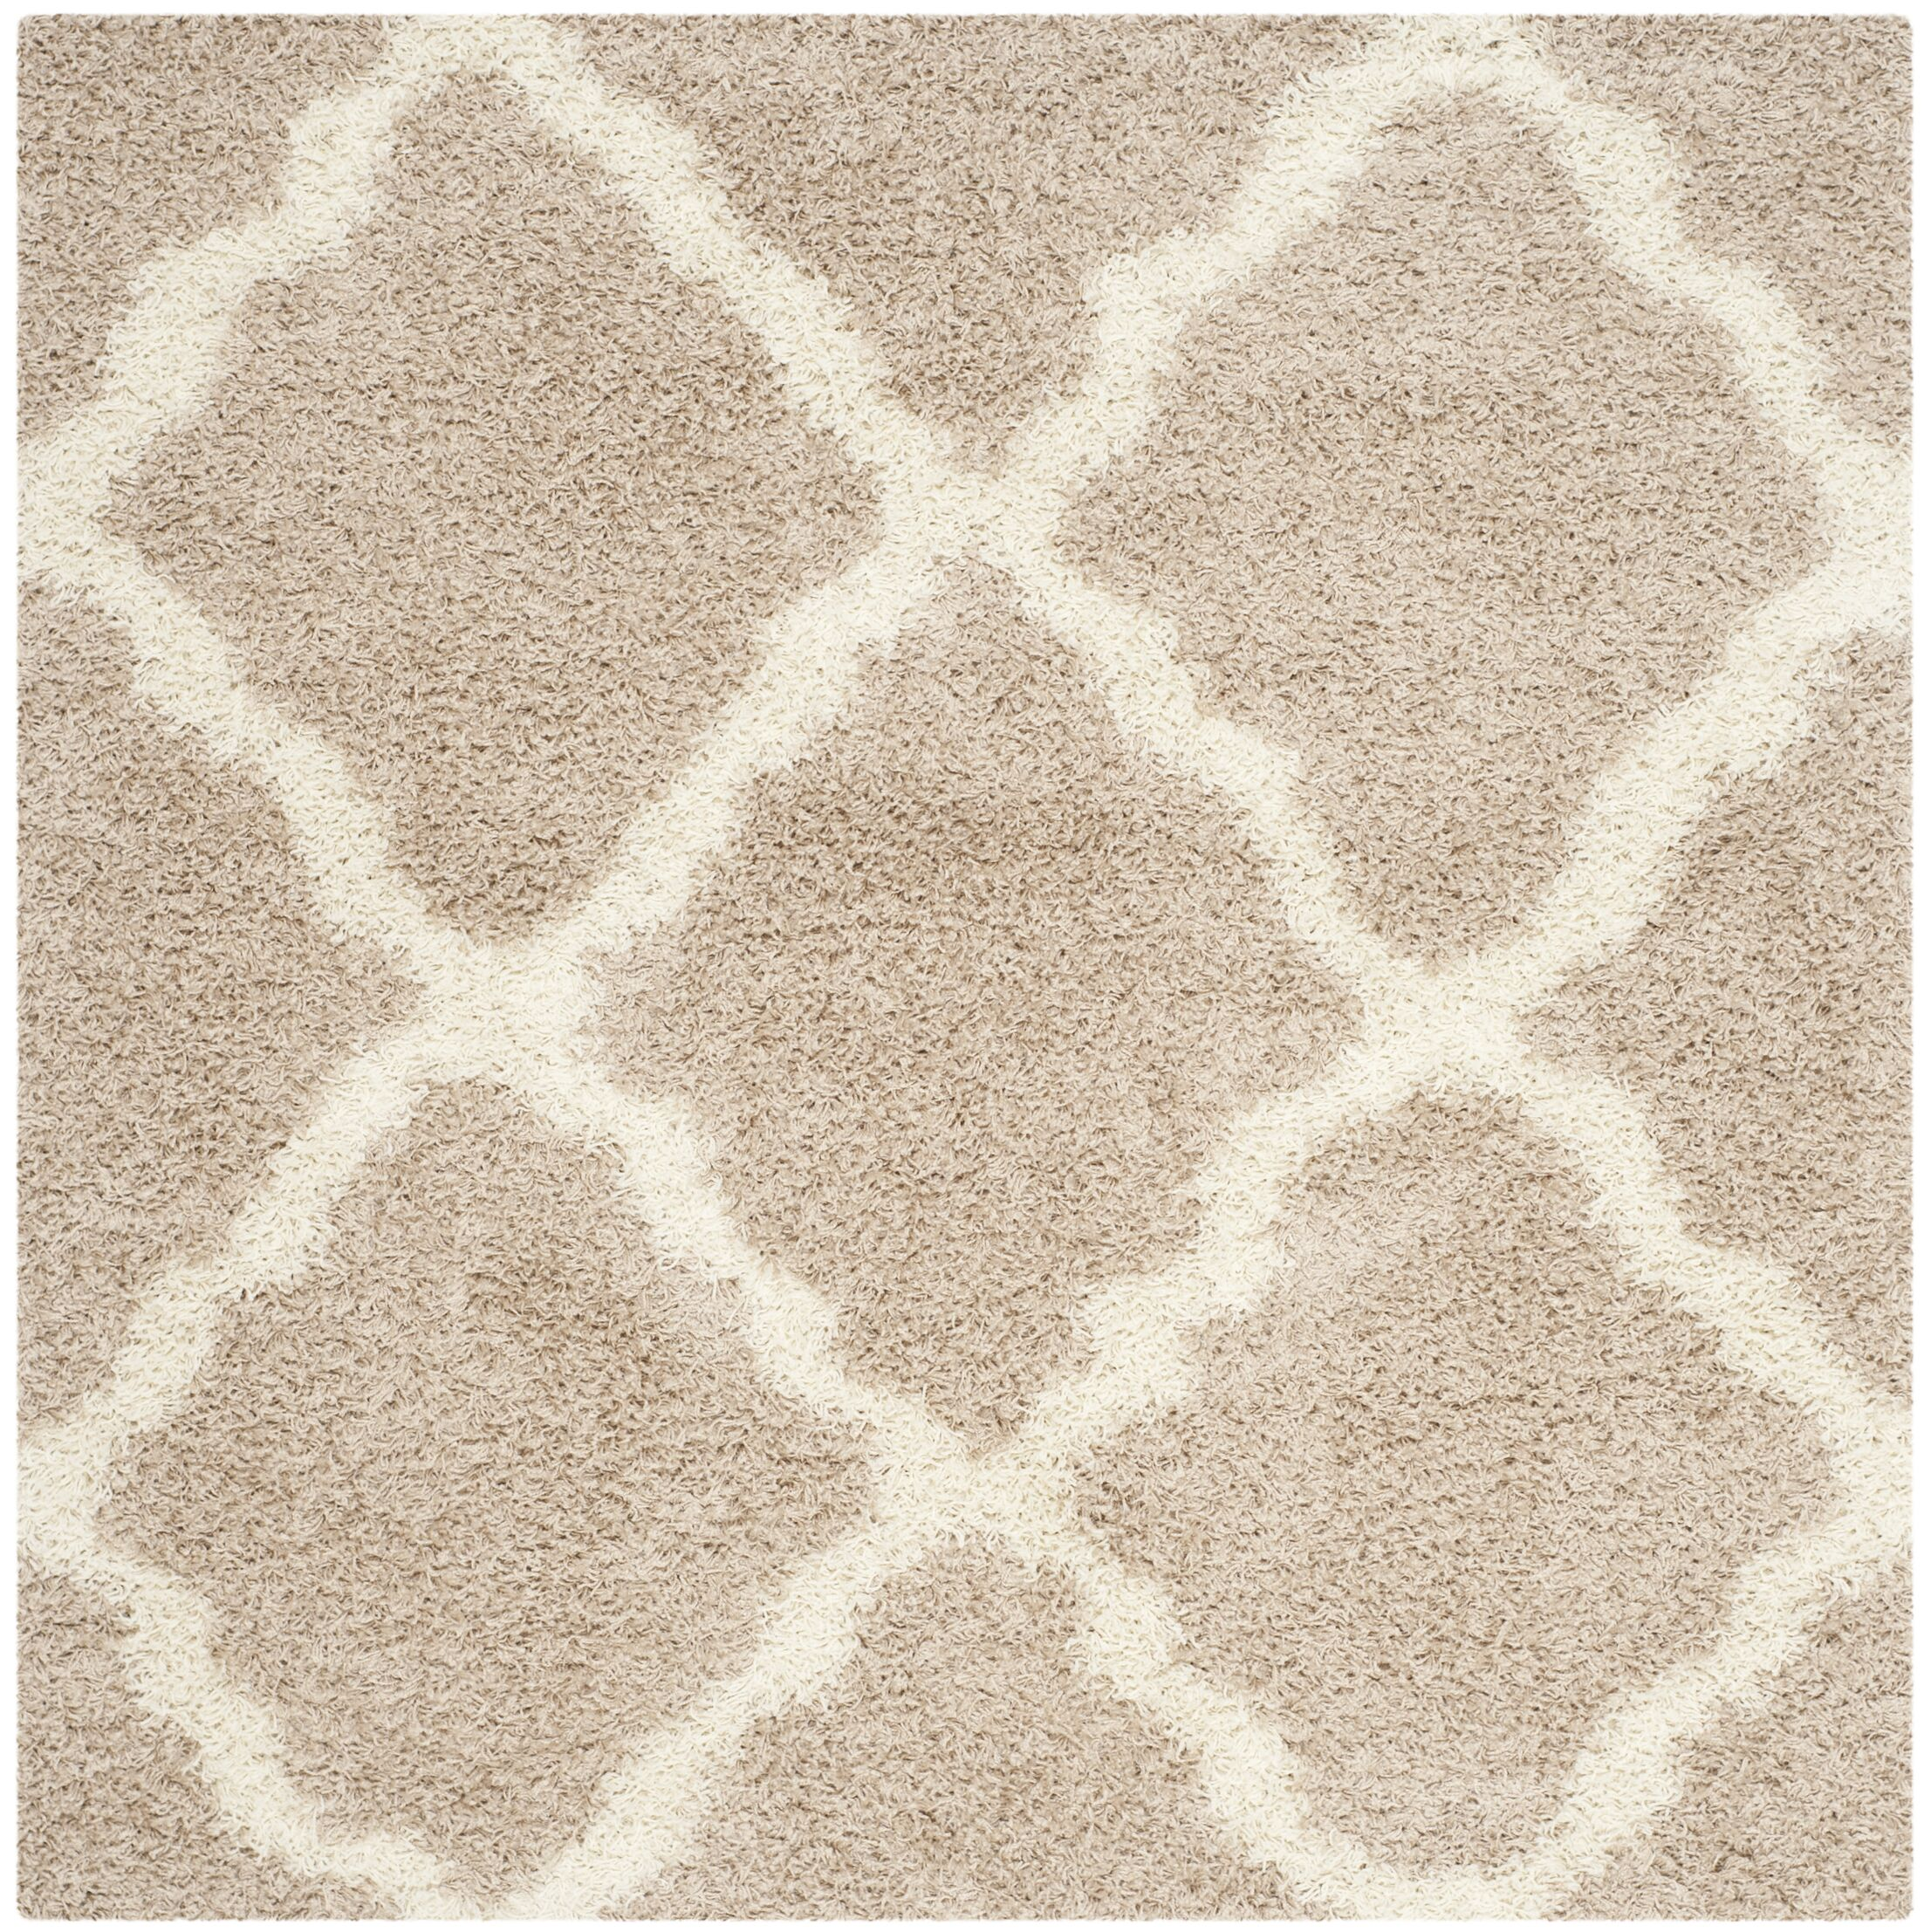 Fickes Beige/Ivory Area Rug Rug Size: Square 6'